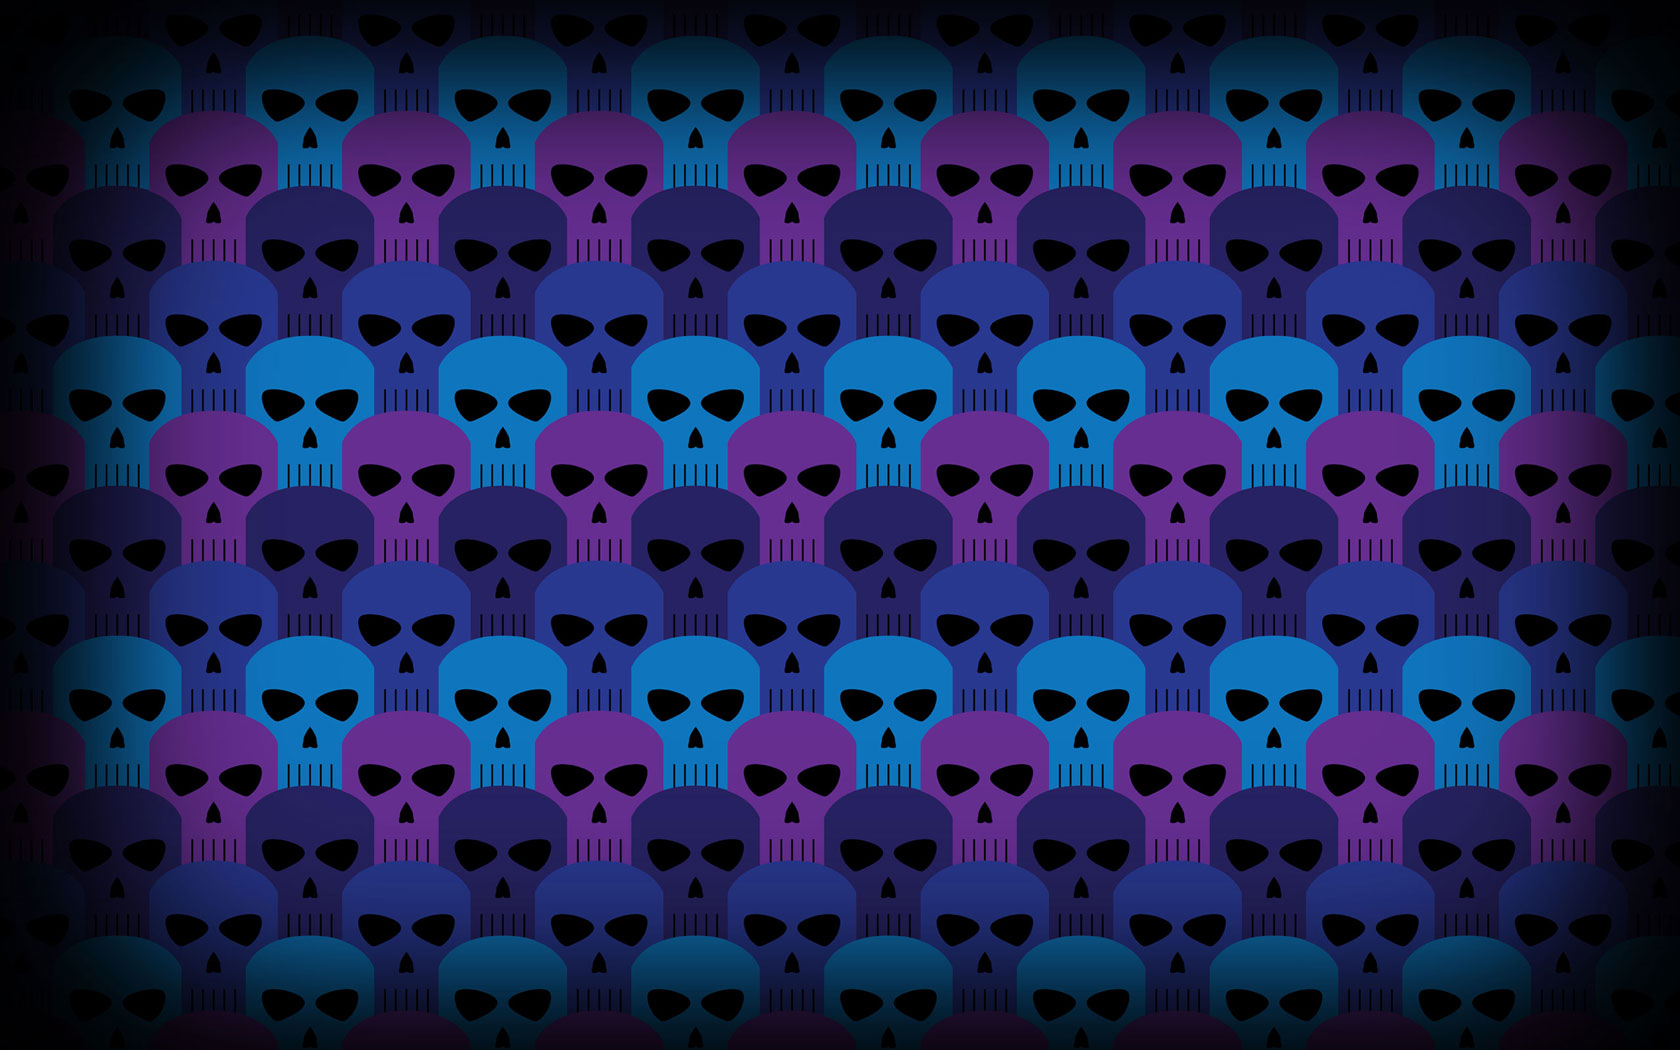 skull pattern wallpaper 15491